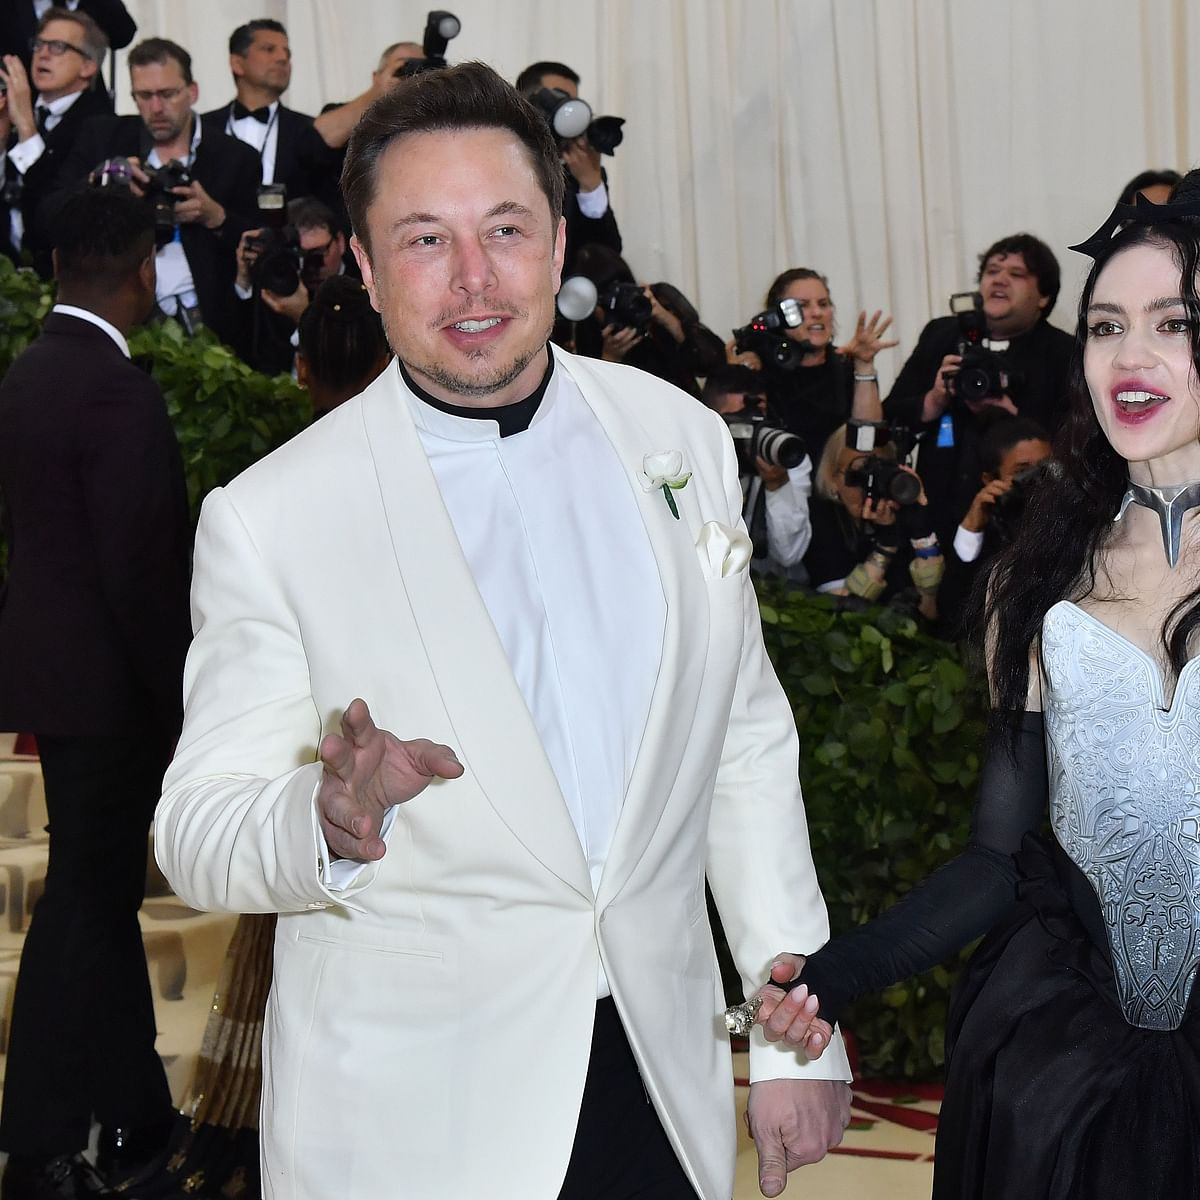 World's richest man Elon Musk's girlfriend Grimes tests positive for COVID-19